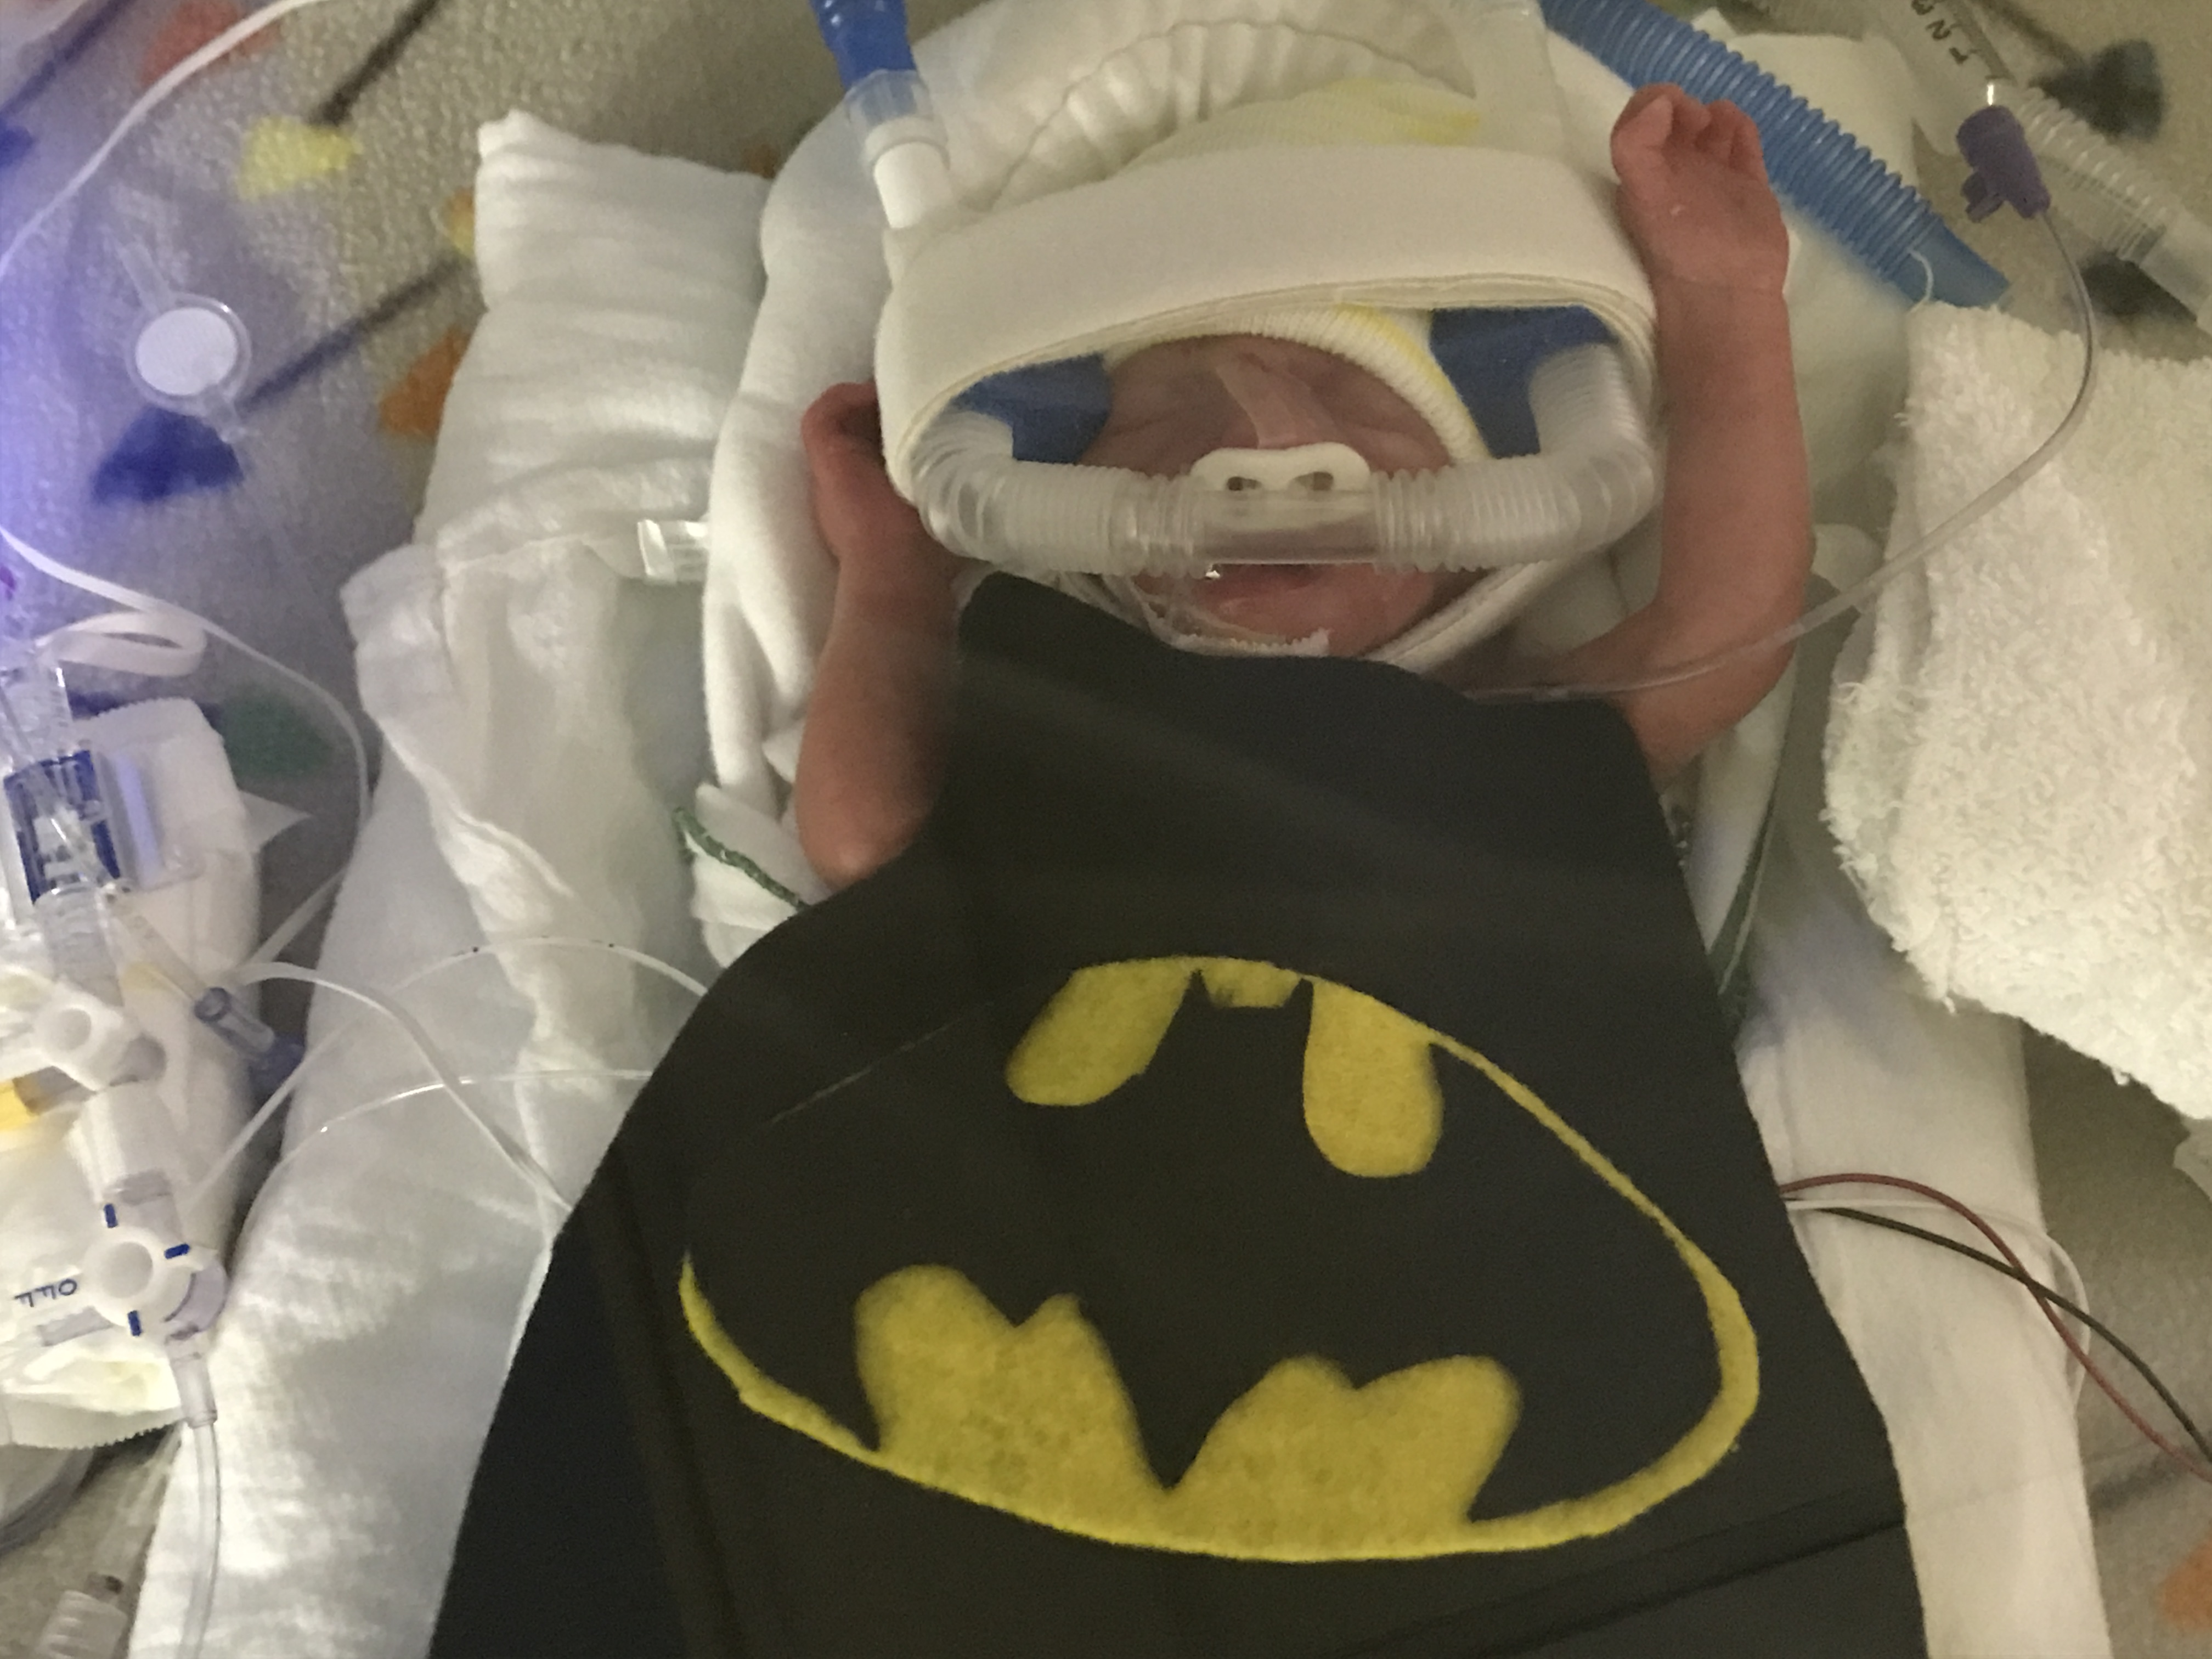 <div class='meta'><div class='origin-logo' data-origin='none'></div><span class='caption-text' data-credit='WakeMed volunteers'>Preemies at WakeMed's NICU are already having some Halloween fun</span></div>